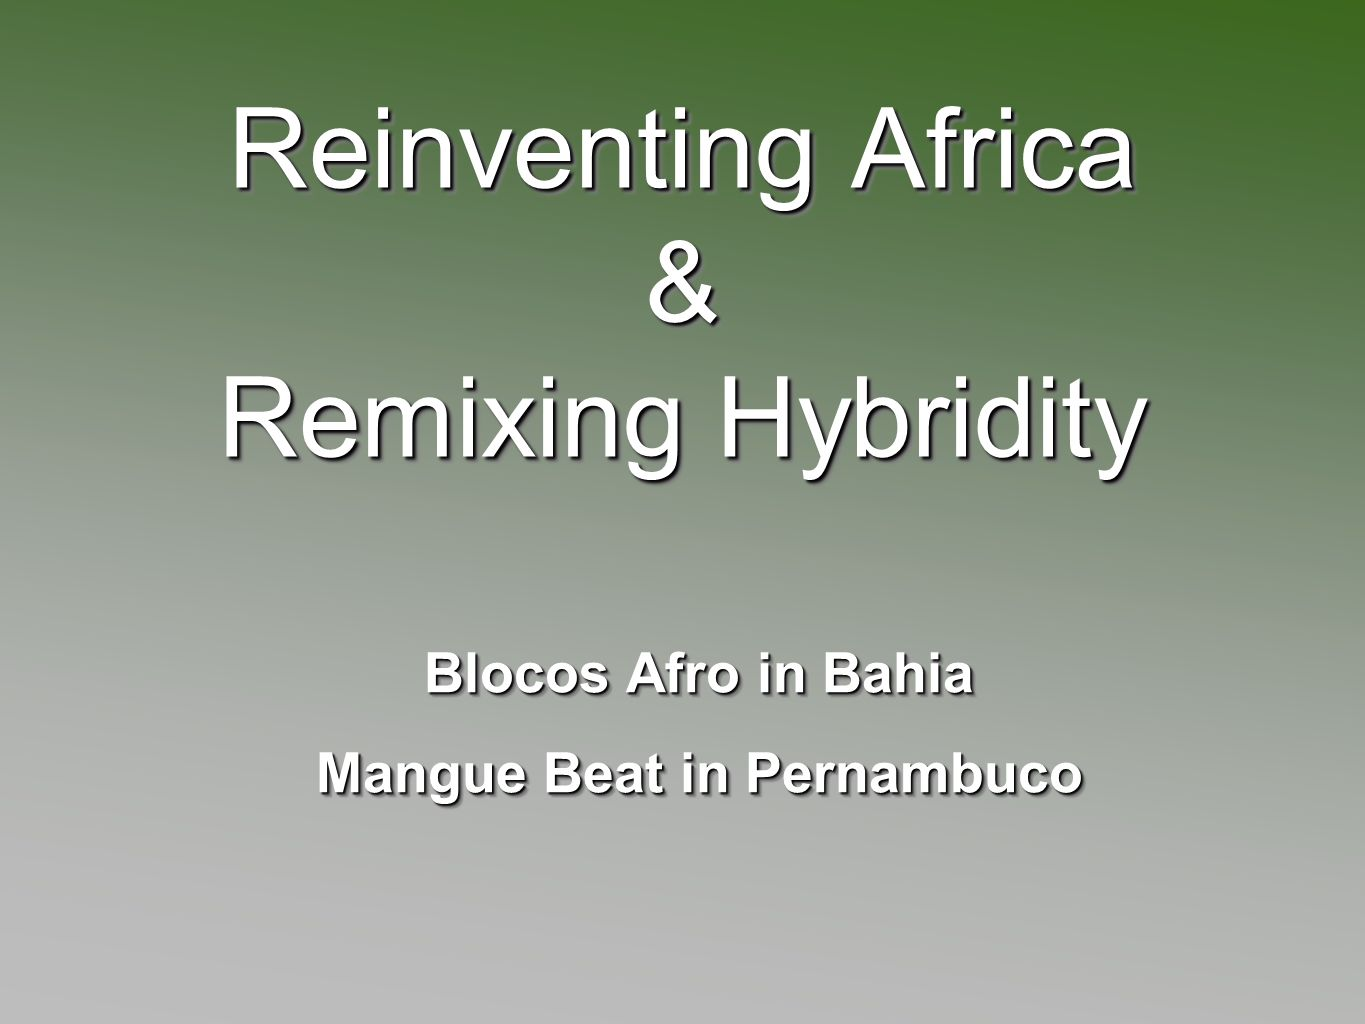 Reinventing Africa & Remixing Hybridity Blocos Afro in Bahia Mangue Beat in Pernambuco Blocos Afro in Bahia Mangue Beat in Pernambuco